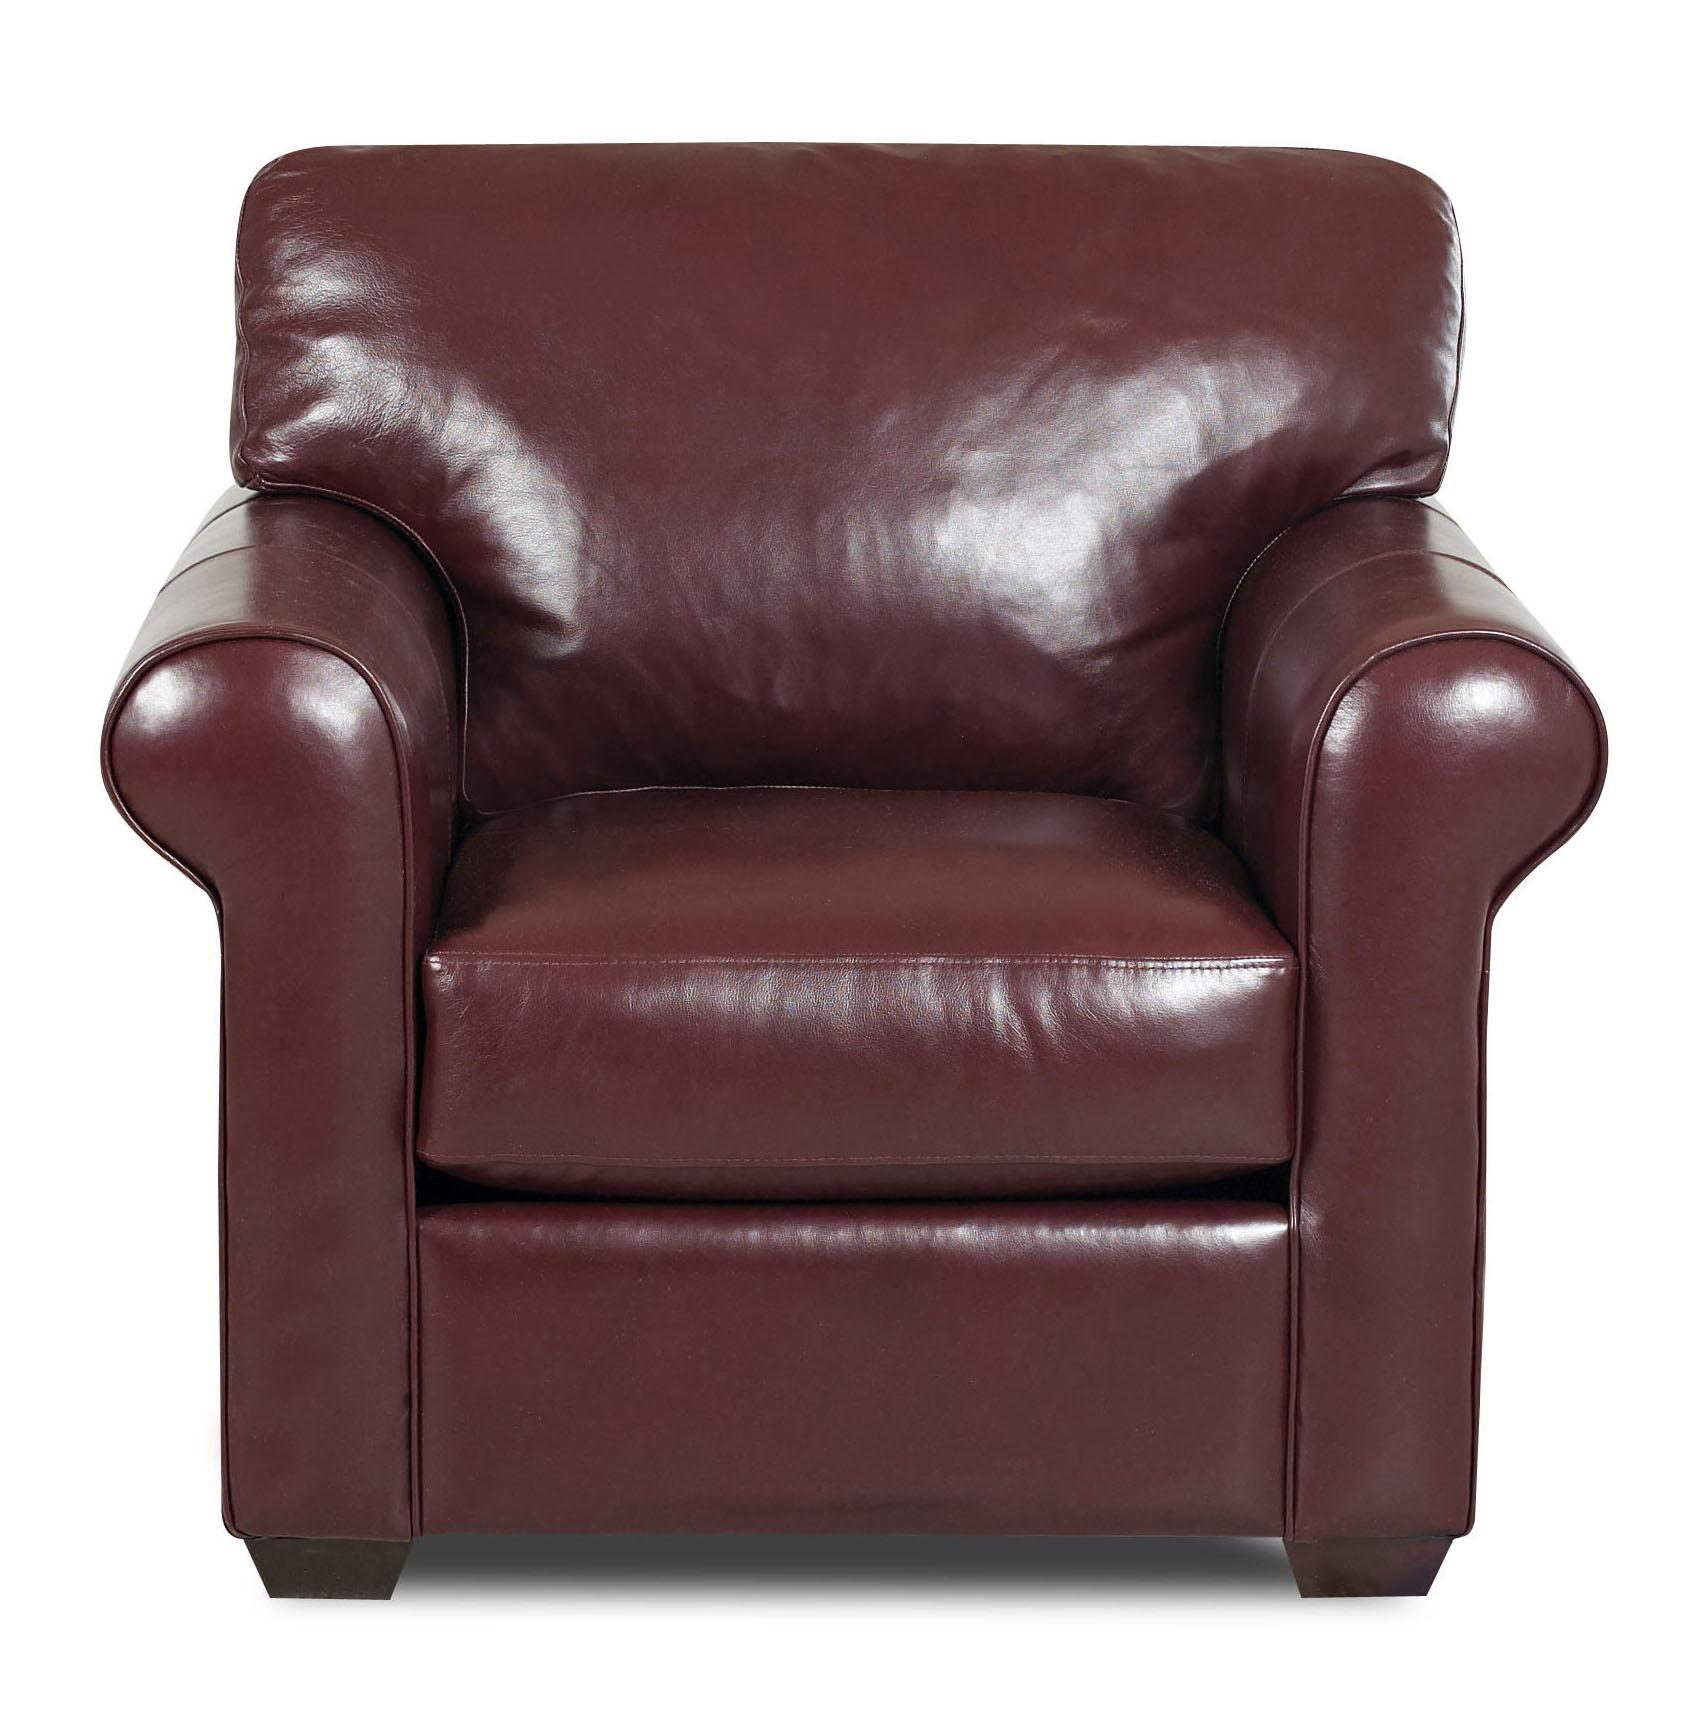 Klaussner Canoy Chair - Item Number: 50200C